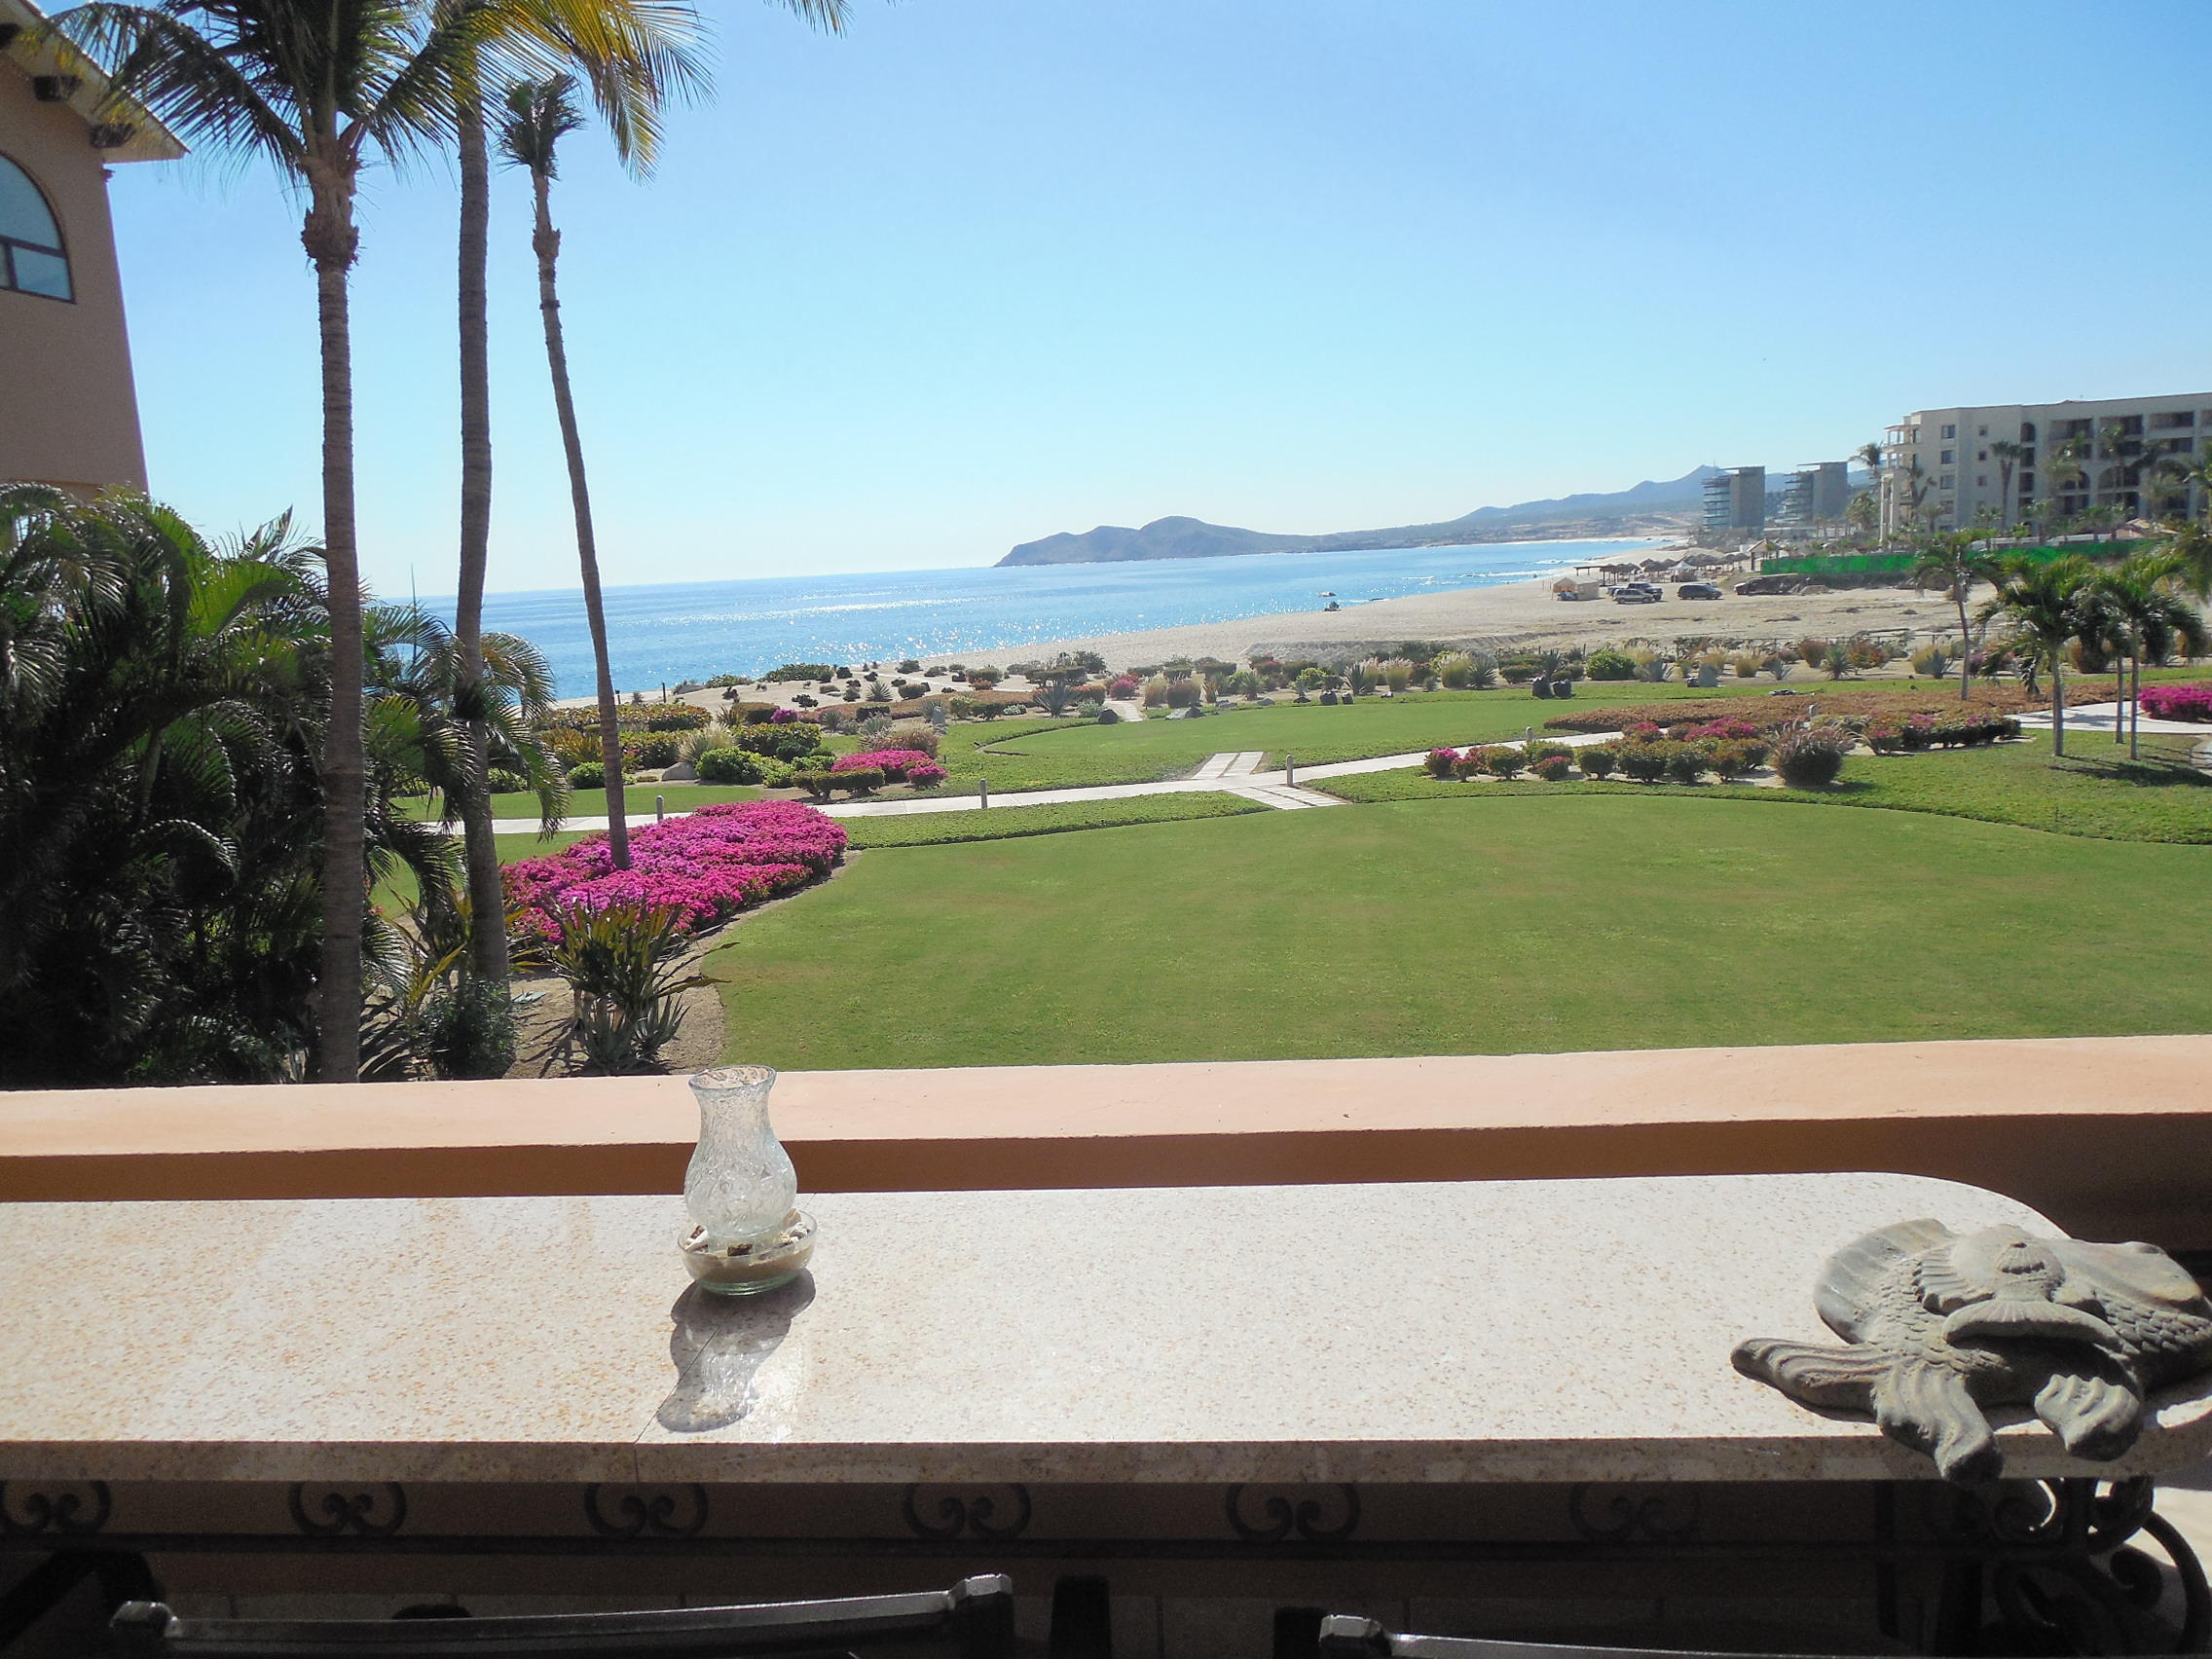 San Jose Corridor, 2 Bedrooms Bedrooms, ,2 BathroomsBathrooms,Condo,For Sale,KM 18.5 Carret Tran, Cabo Real,17-2386